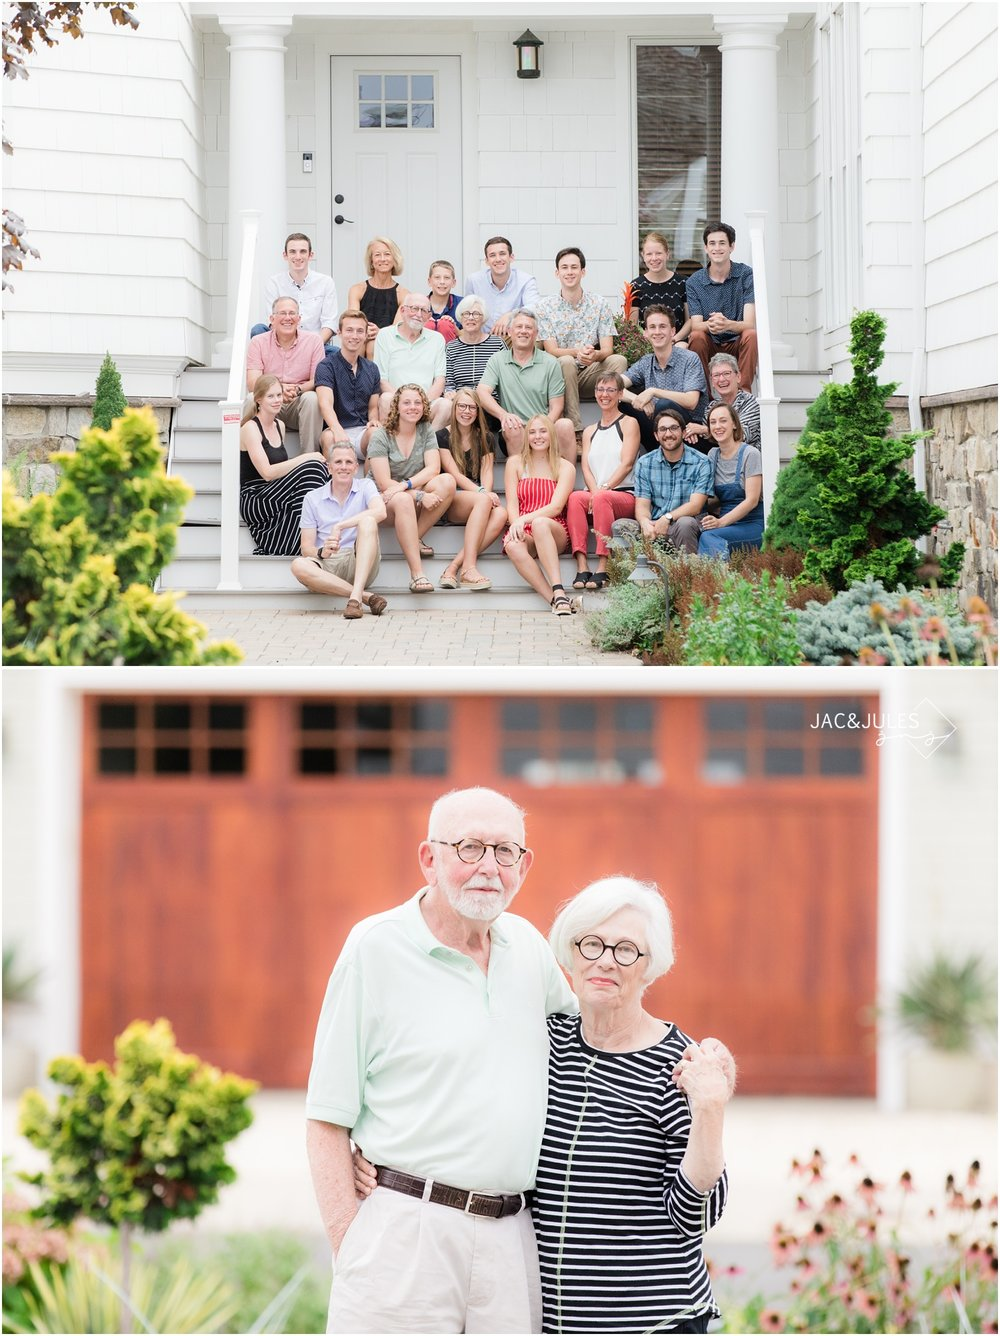 family reunion photos at home in Mantoloking, NJ.